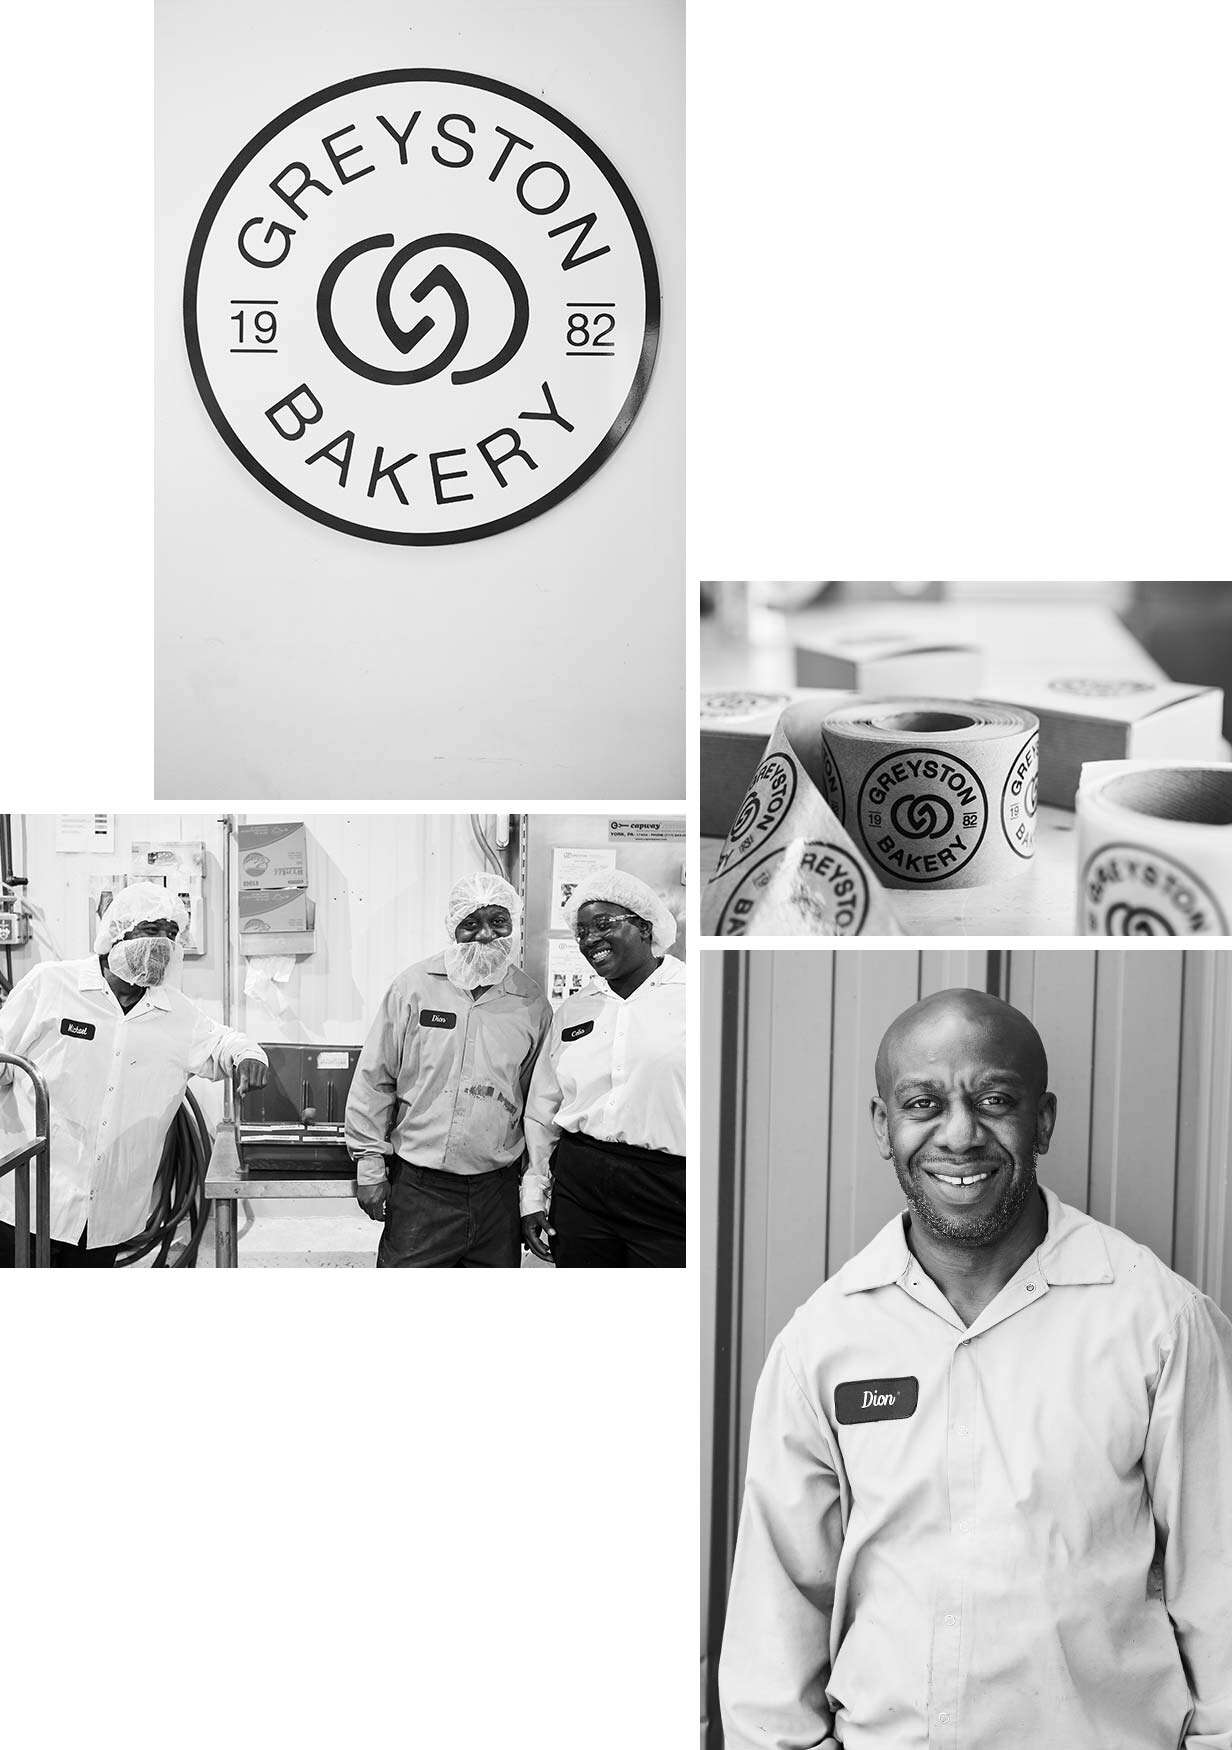 Greyston Bakery and its employees